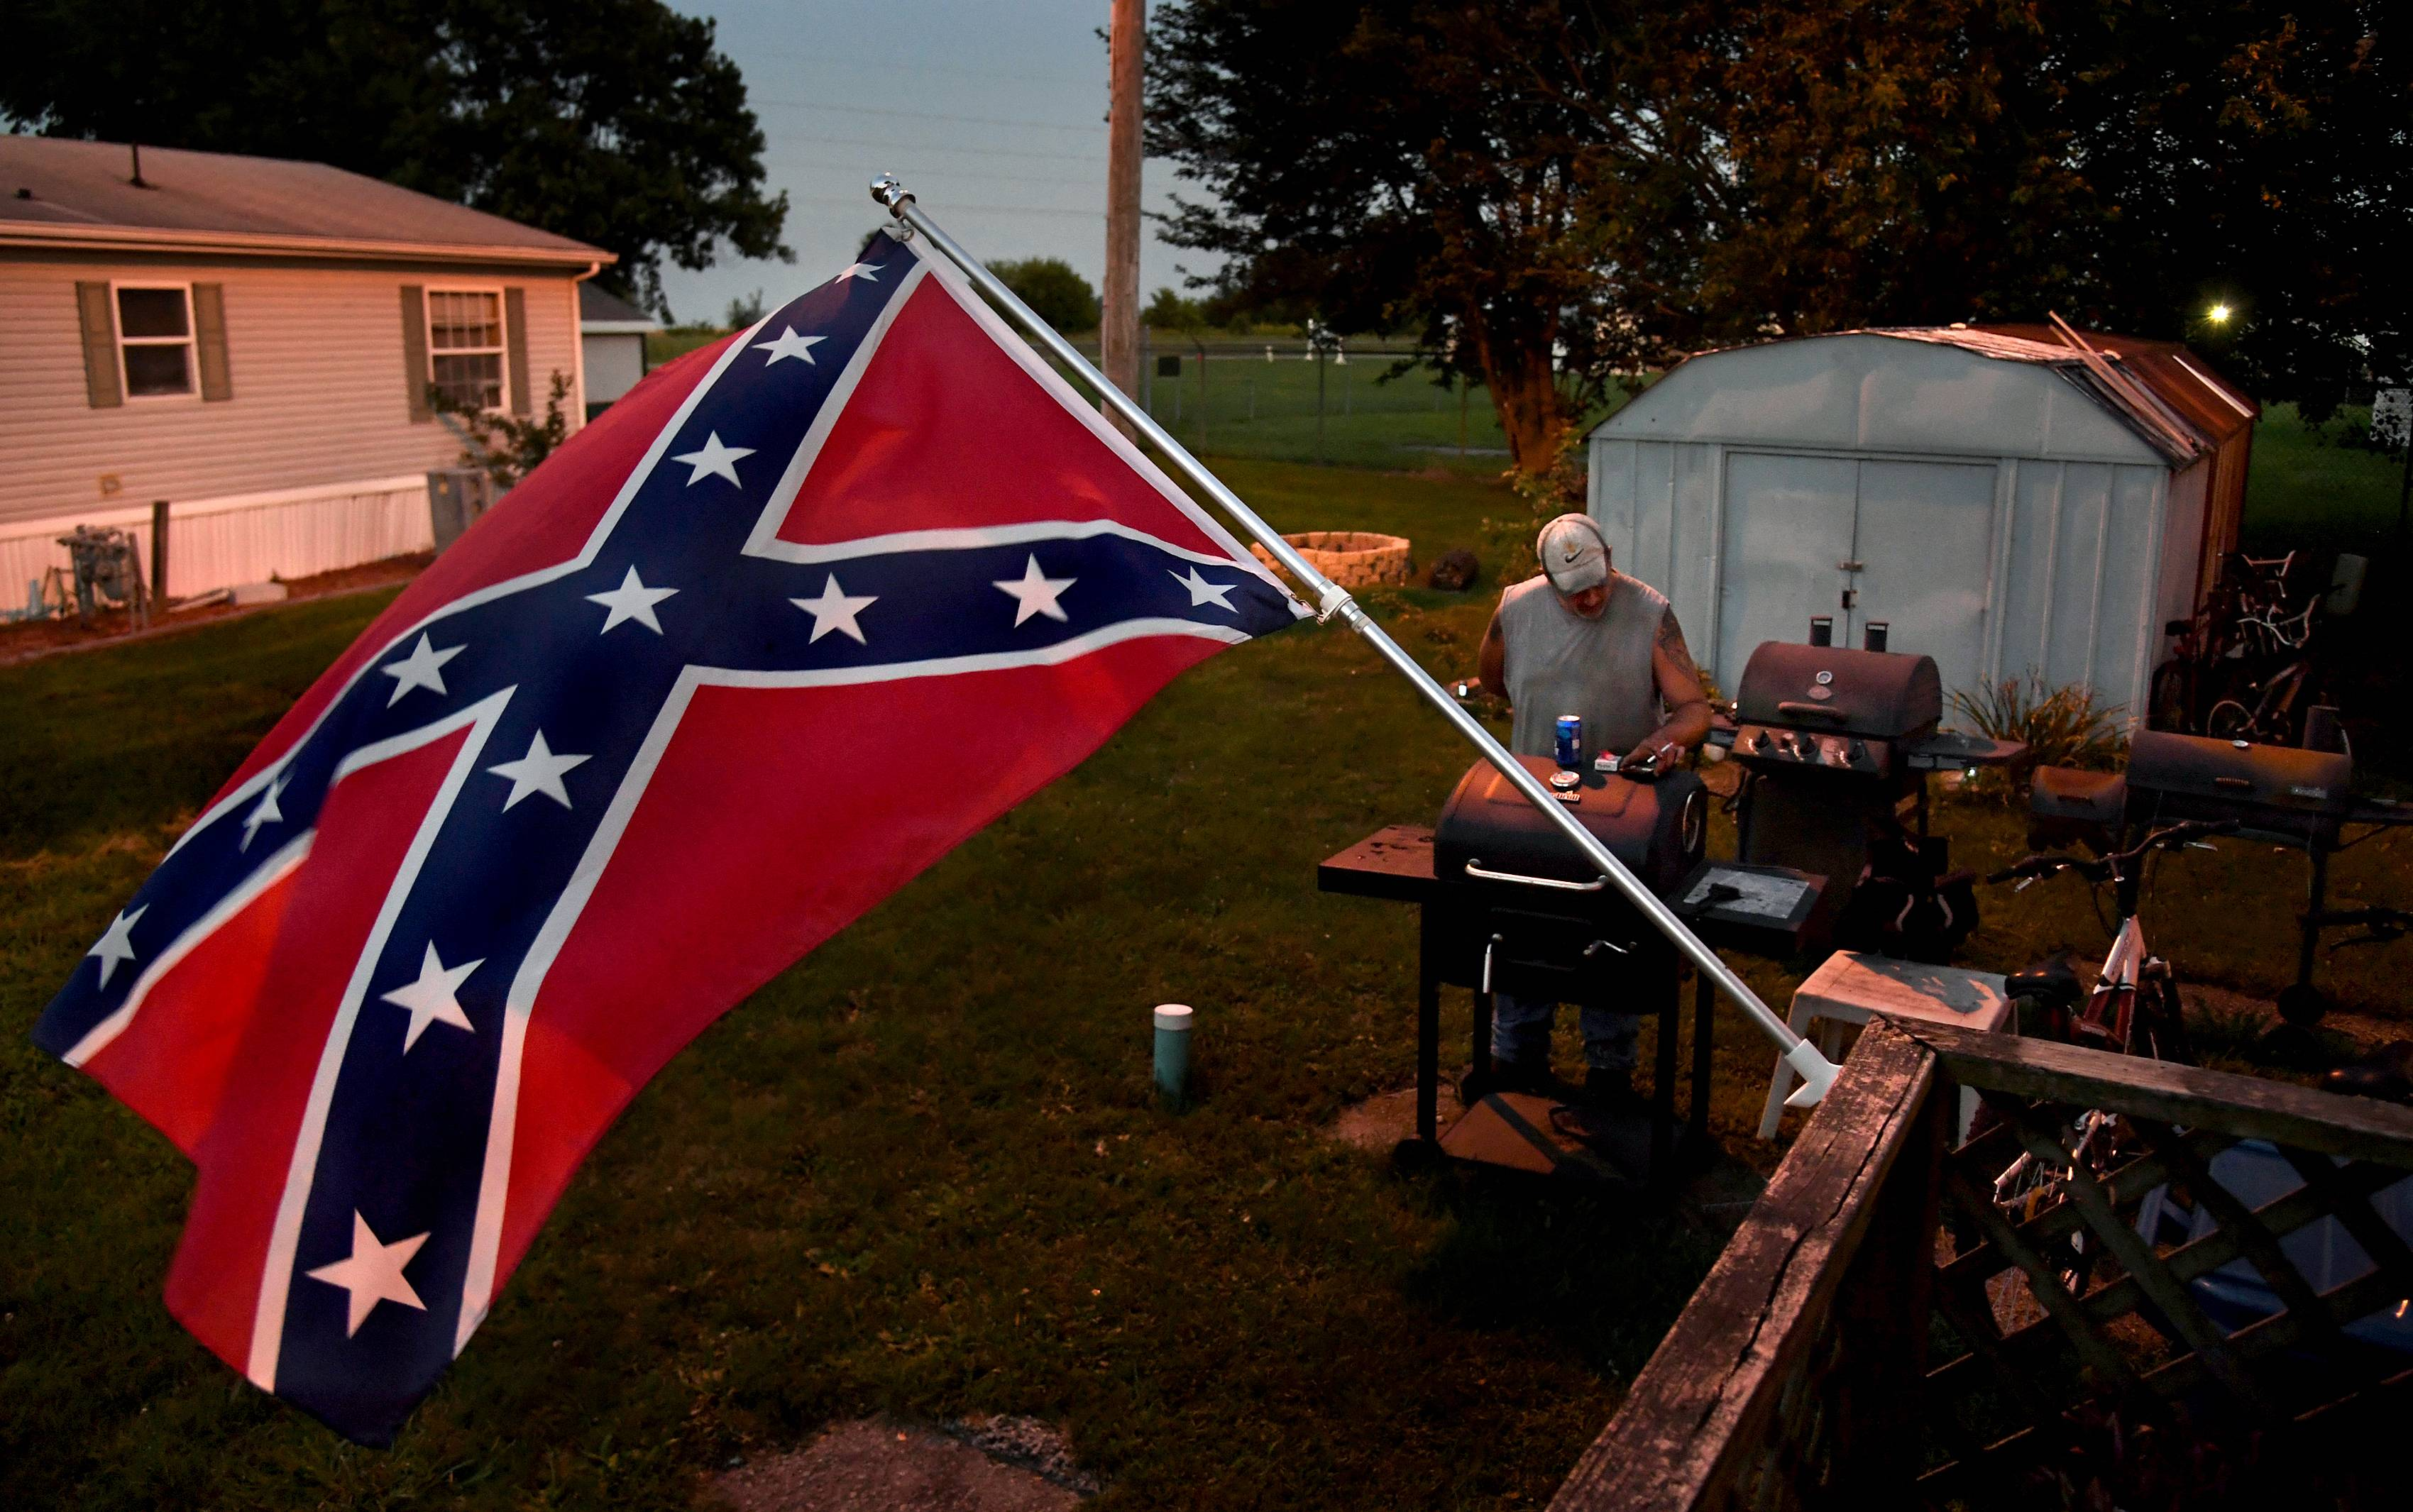 Brent Lowe checks his phone in the yard of his mobile home, where a Confederate battle flag flies daily. Lowe says he feels that flying the Confederate flag is more an act of rebellion than a political statement. MUST CREDIT: Washington Post photo by Michael S. Williamson